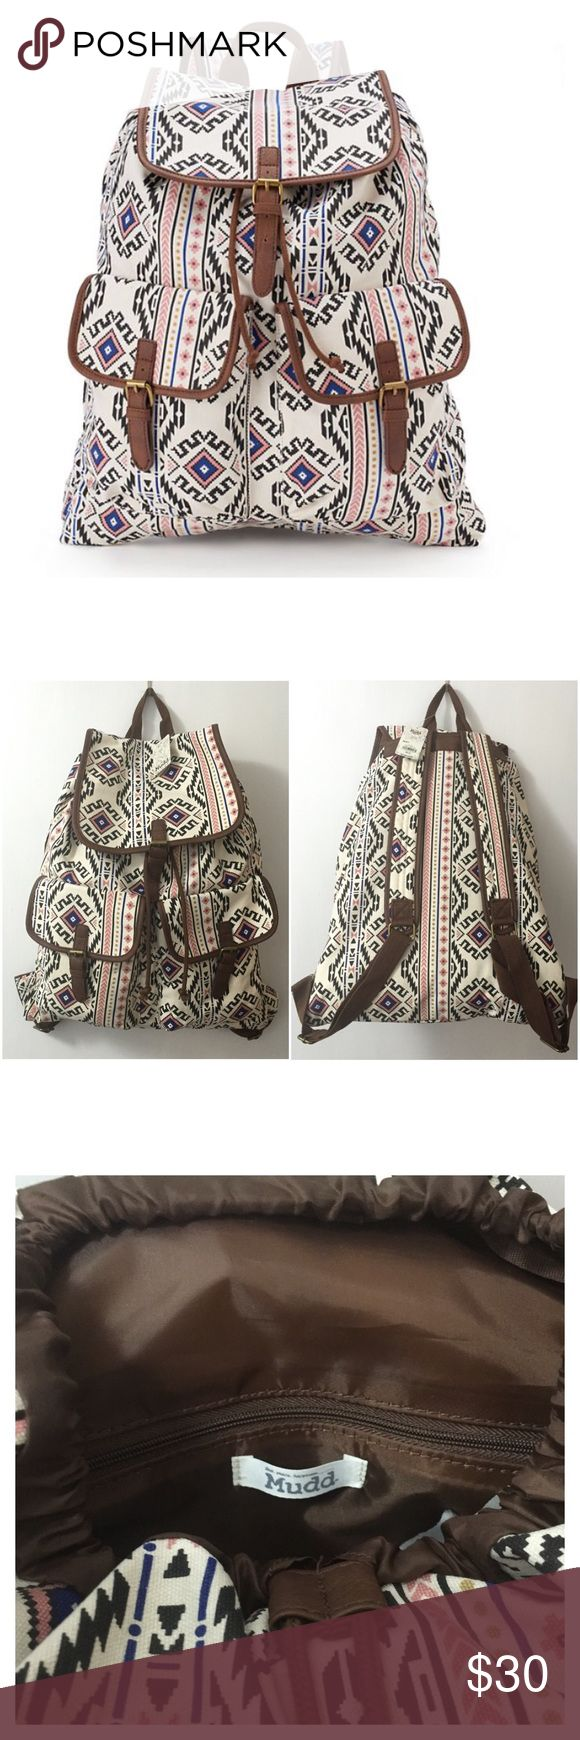 🌼SPRING Mudd Backpack🎒SALE🌈 Mudd Aztec Backpack.  Carry everything you need for the day in this stylish Mudd Bag.  In Tan. Mudd Bags Backpacks